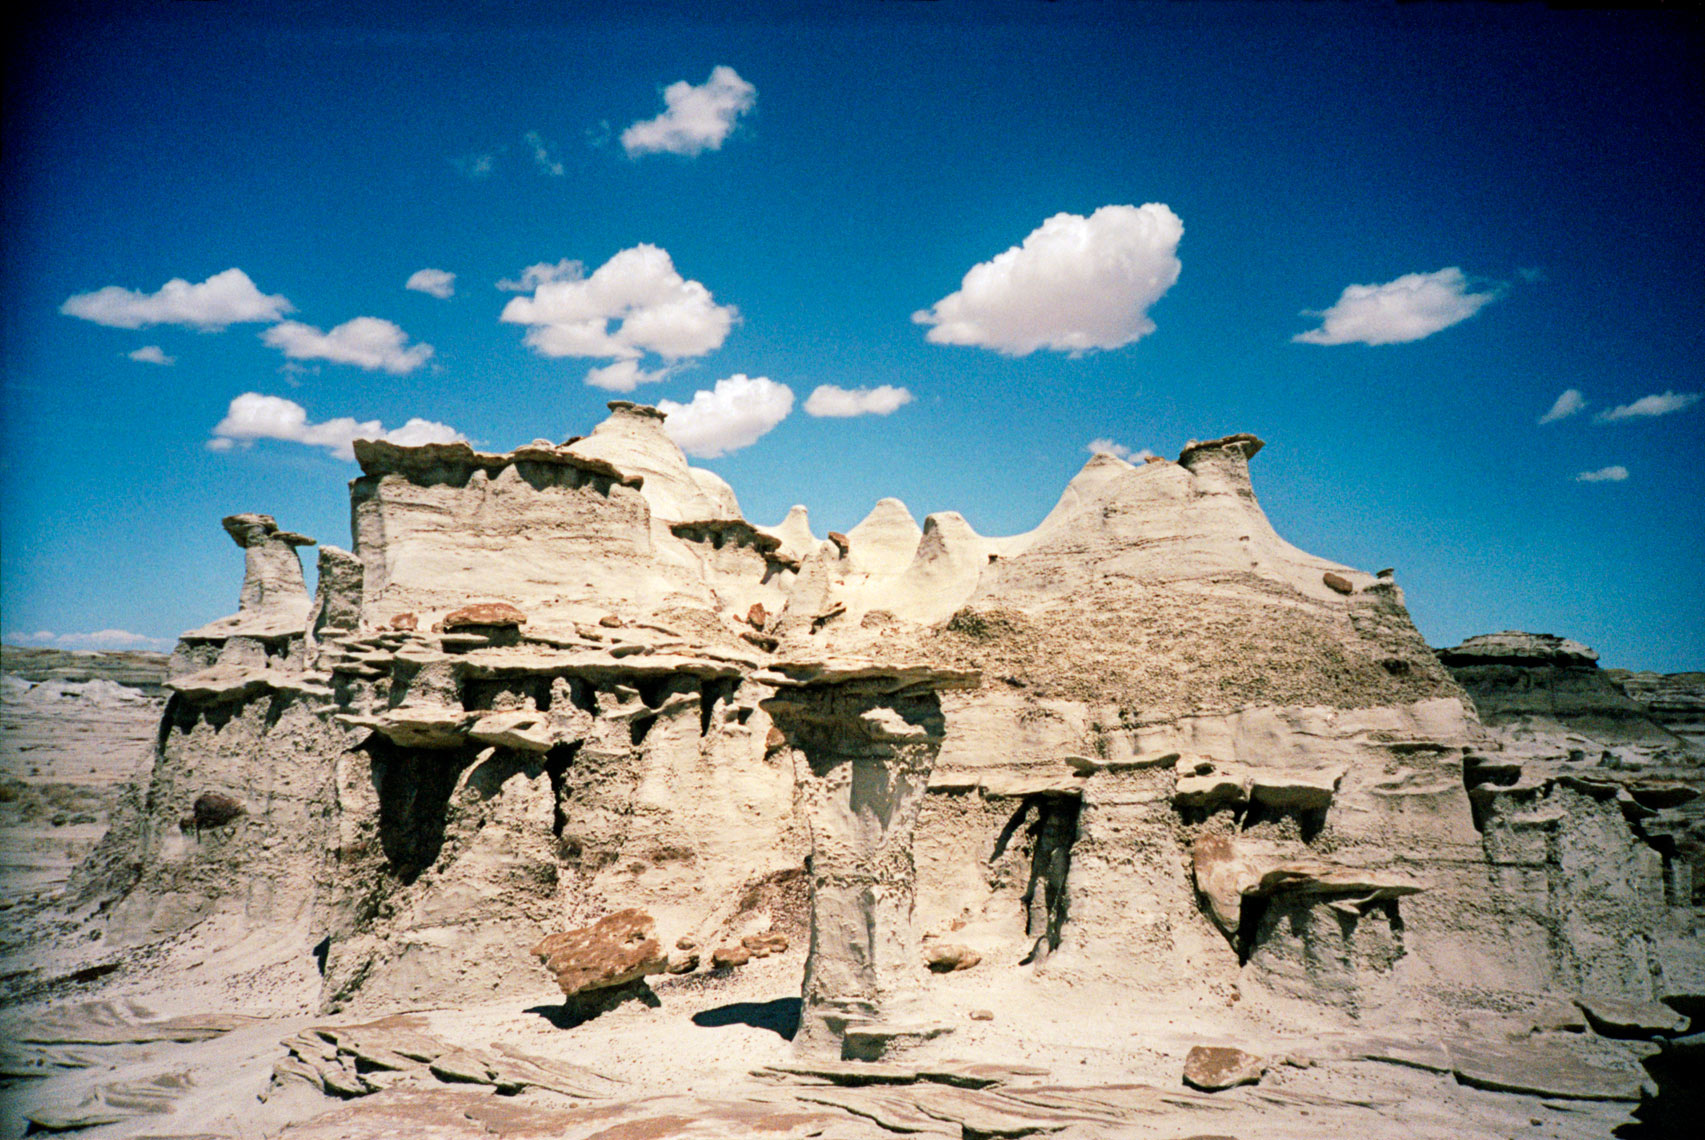 Bisti De-Na-Zin Wilderness New Mexico badlands